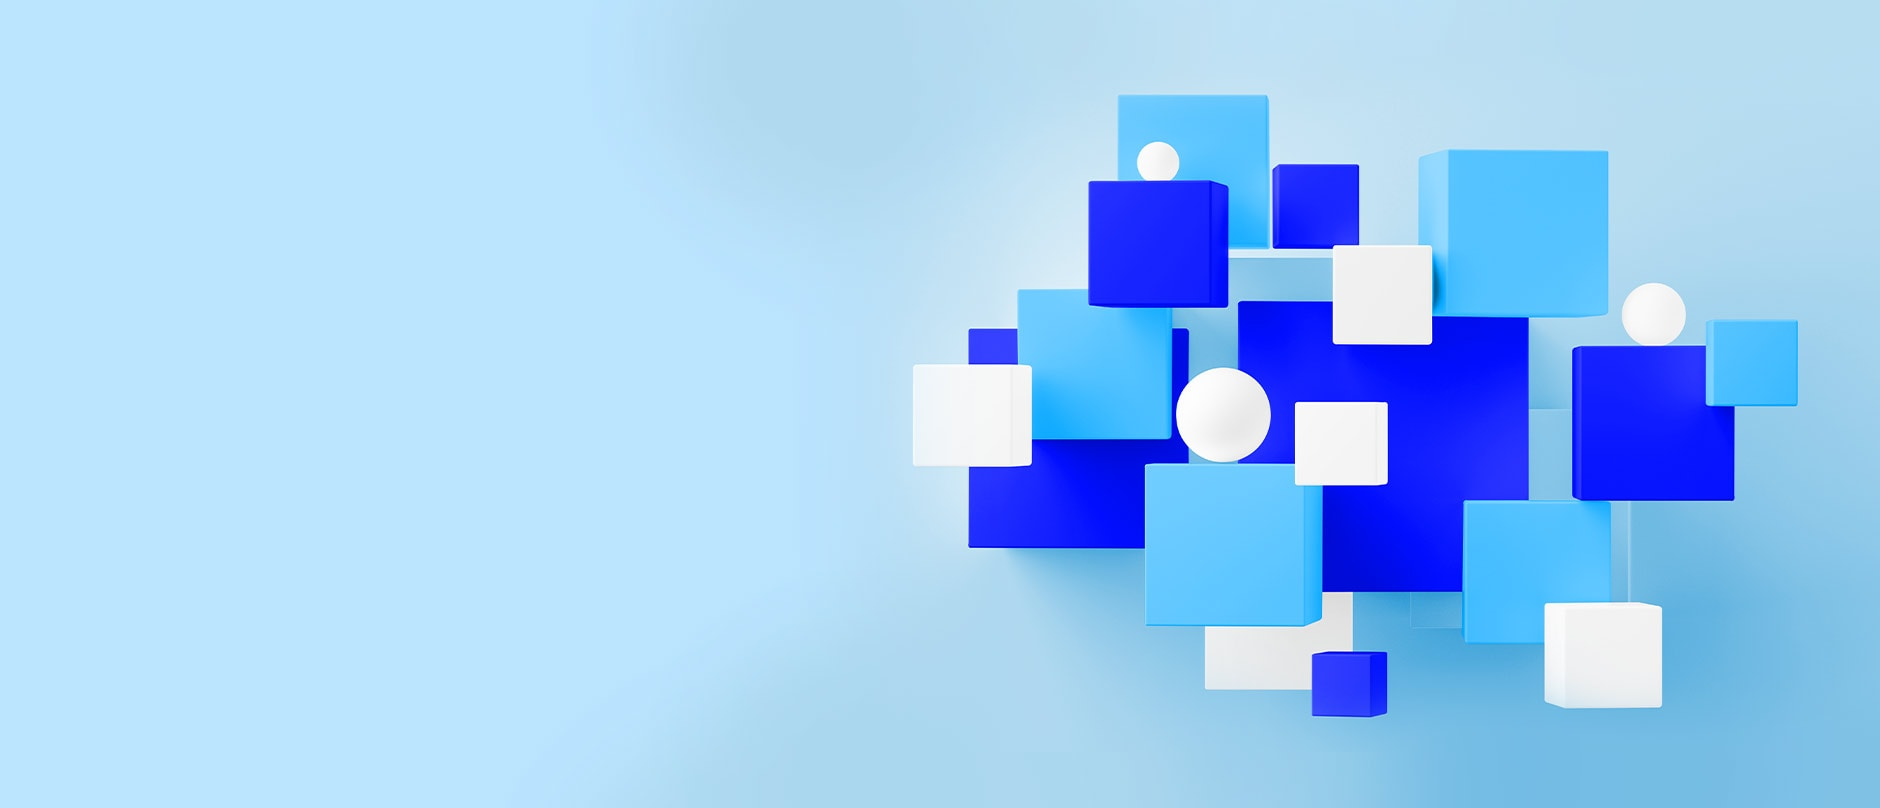 light blue background with abstract object on the right made blue, light blue and white squares and circles